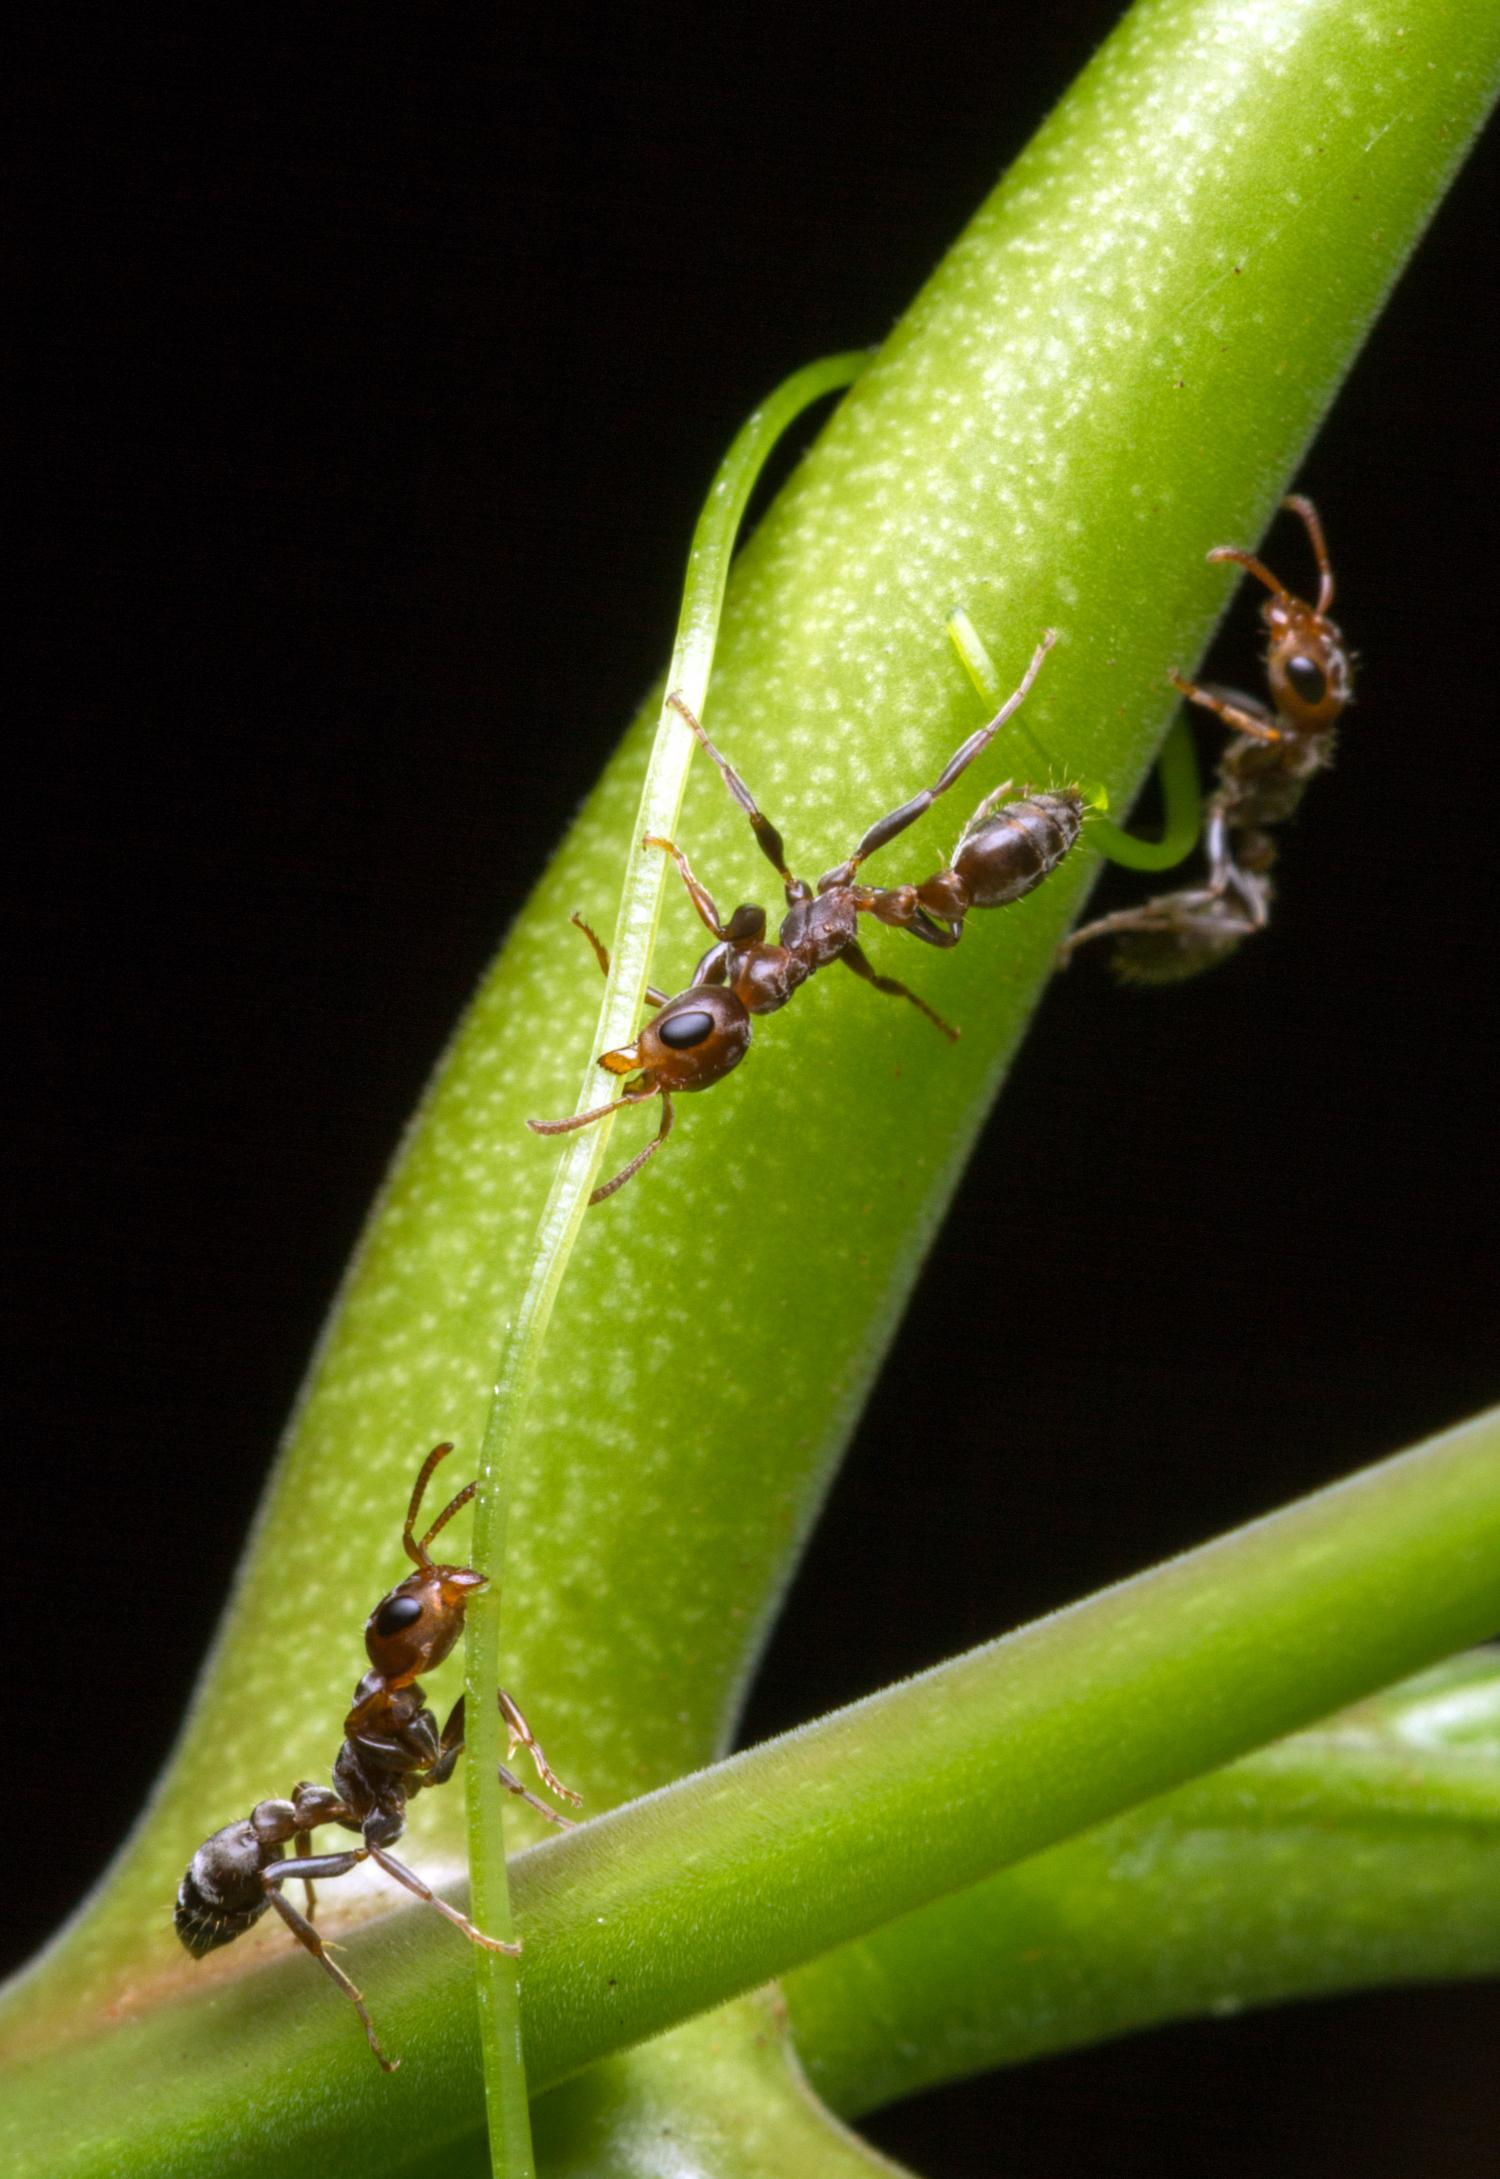 Study challenges long-standing scientific theory: Ant genomics declare 'checkmate' to red king theory